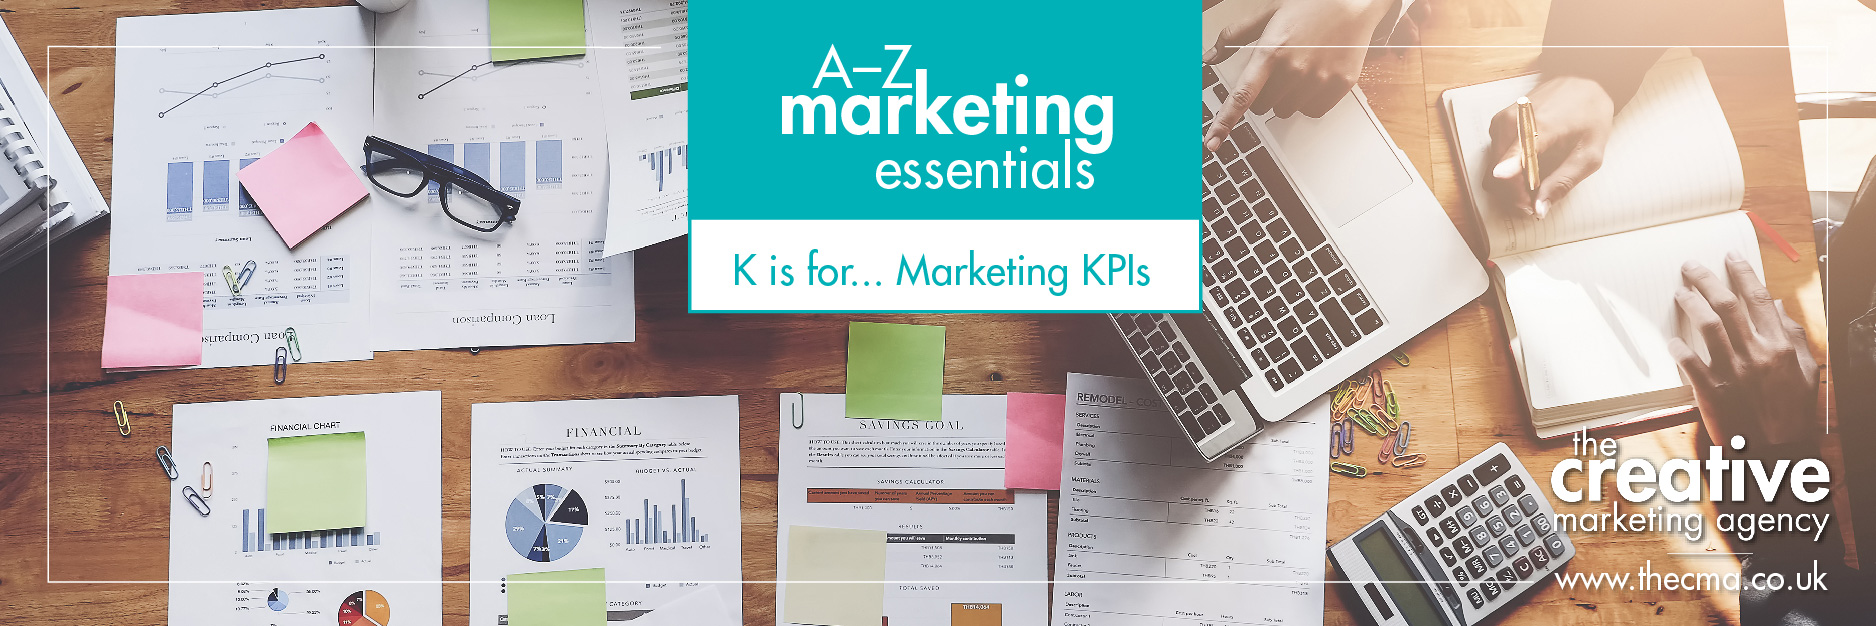 Marketing KPIs - which marketing KPI to use?